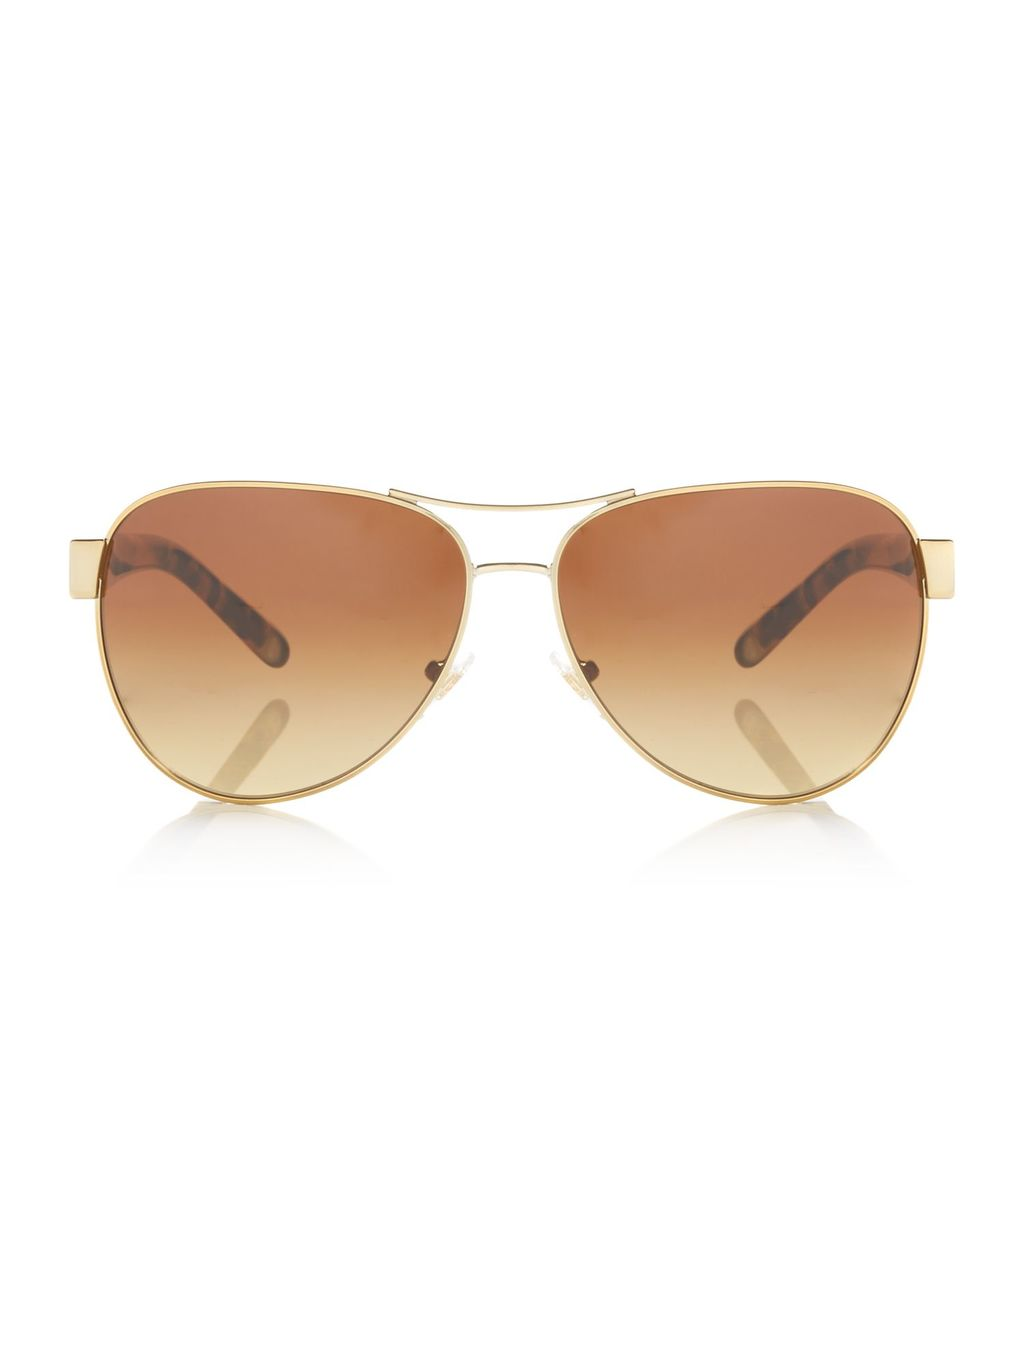 Gold Ty6051 Pilot Sunglasses - predominant colour: gold; occasions: casual, holiday; style: aviator; size: standard; material: chain/metal; pattern: plain; finish: plain; wardrobe: basic; season: s/s 2017